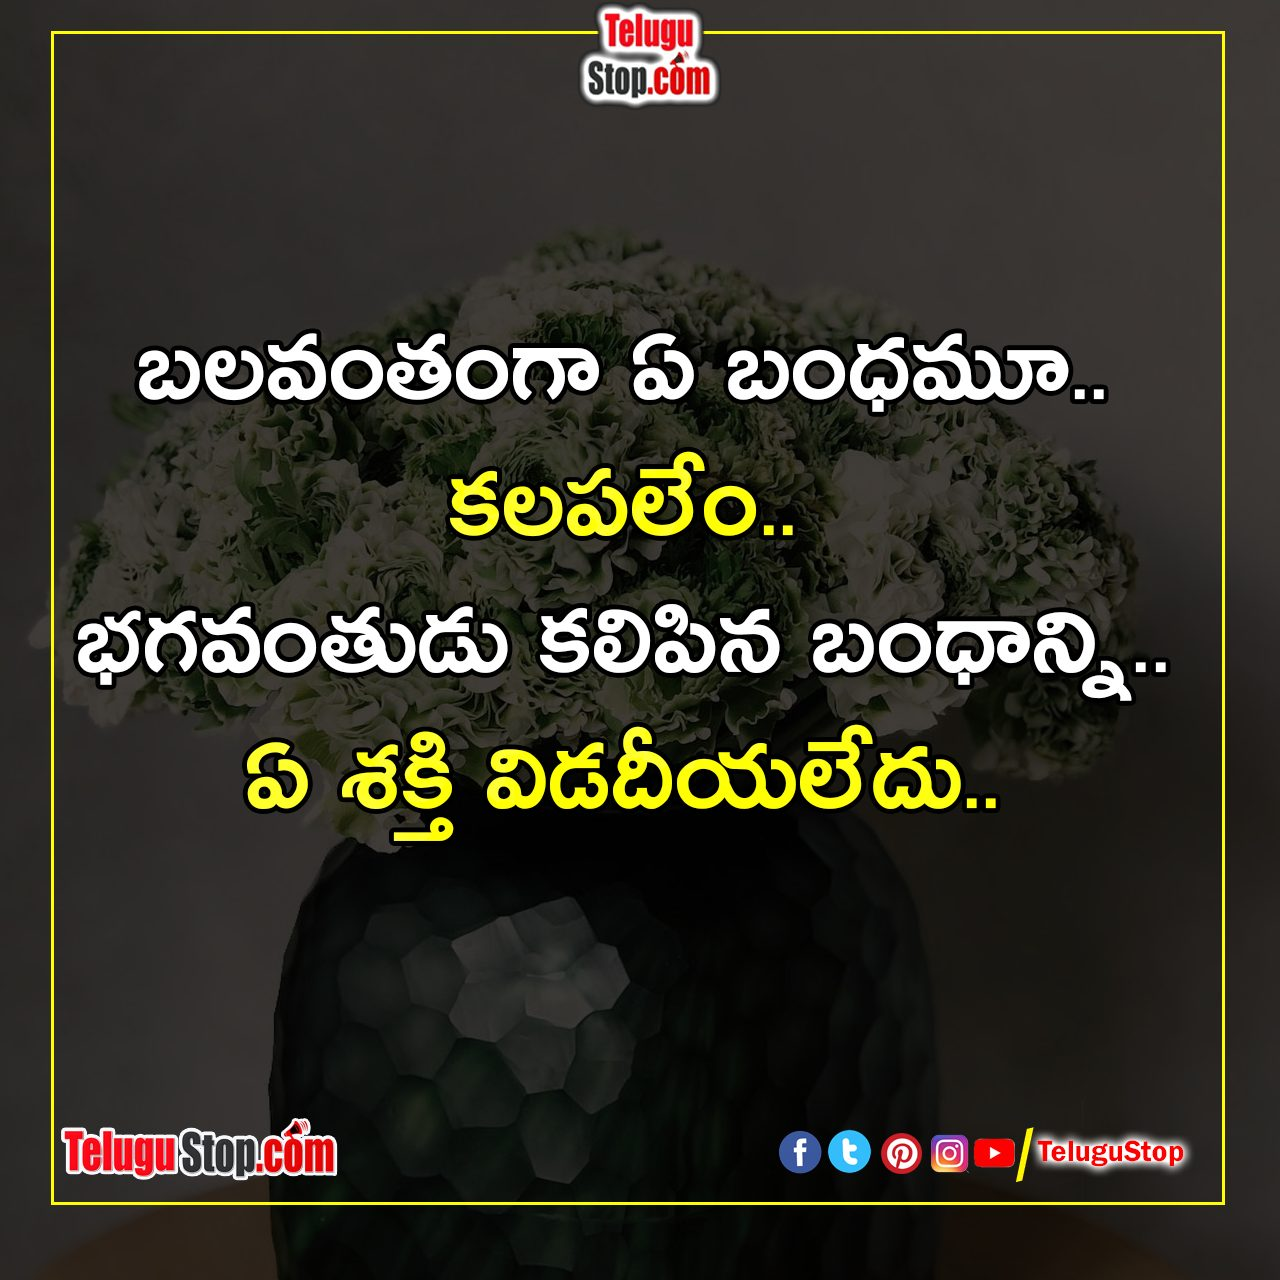 Telugu Hear The Problem Without Responsibility Inspiriational Quotes, No Force Can Break The Bond When God Joins Inspirational Quotes, Value Related Inspiriational Qutes, We Are Lucky To Find A Slope That Thinks For Us Inspiriational Quotes-Telugu Daily Quotes - Inspirational/Motivational/Love/Friendship/Good Morning Quote